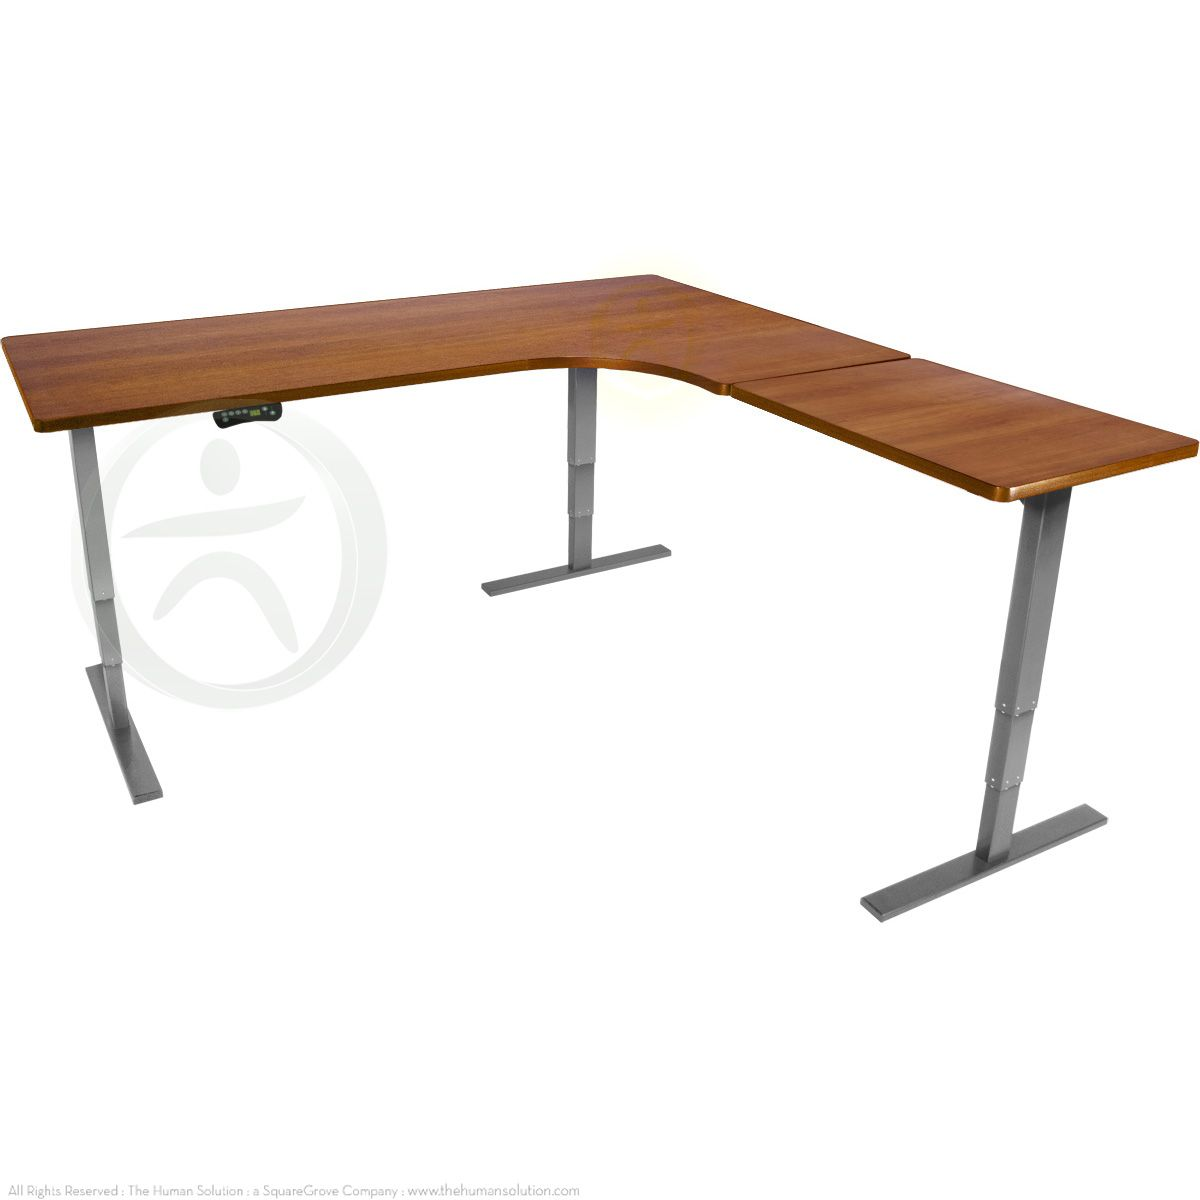 Uplift 950 Height Adjustable L Shaped Standing Desk Affordable Standing Desk Desk L Shaped Desk